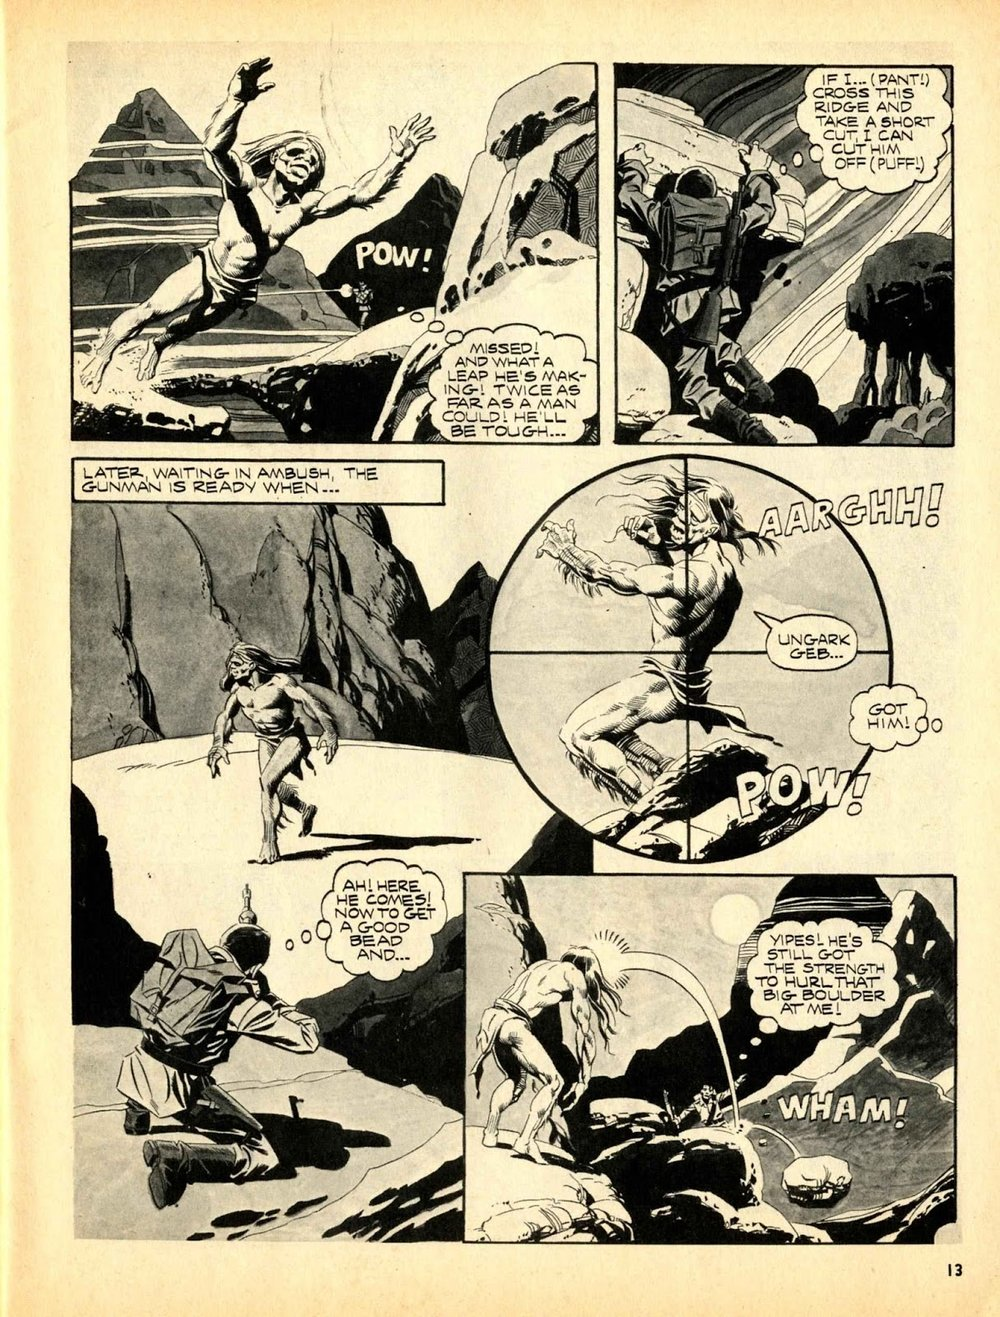 Web of Horror (1969) #3 pg13, written by Otto Binder with art from Ralph Reese.